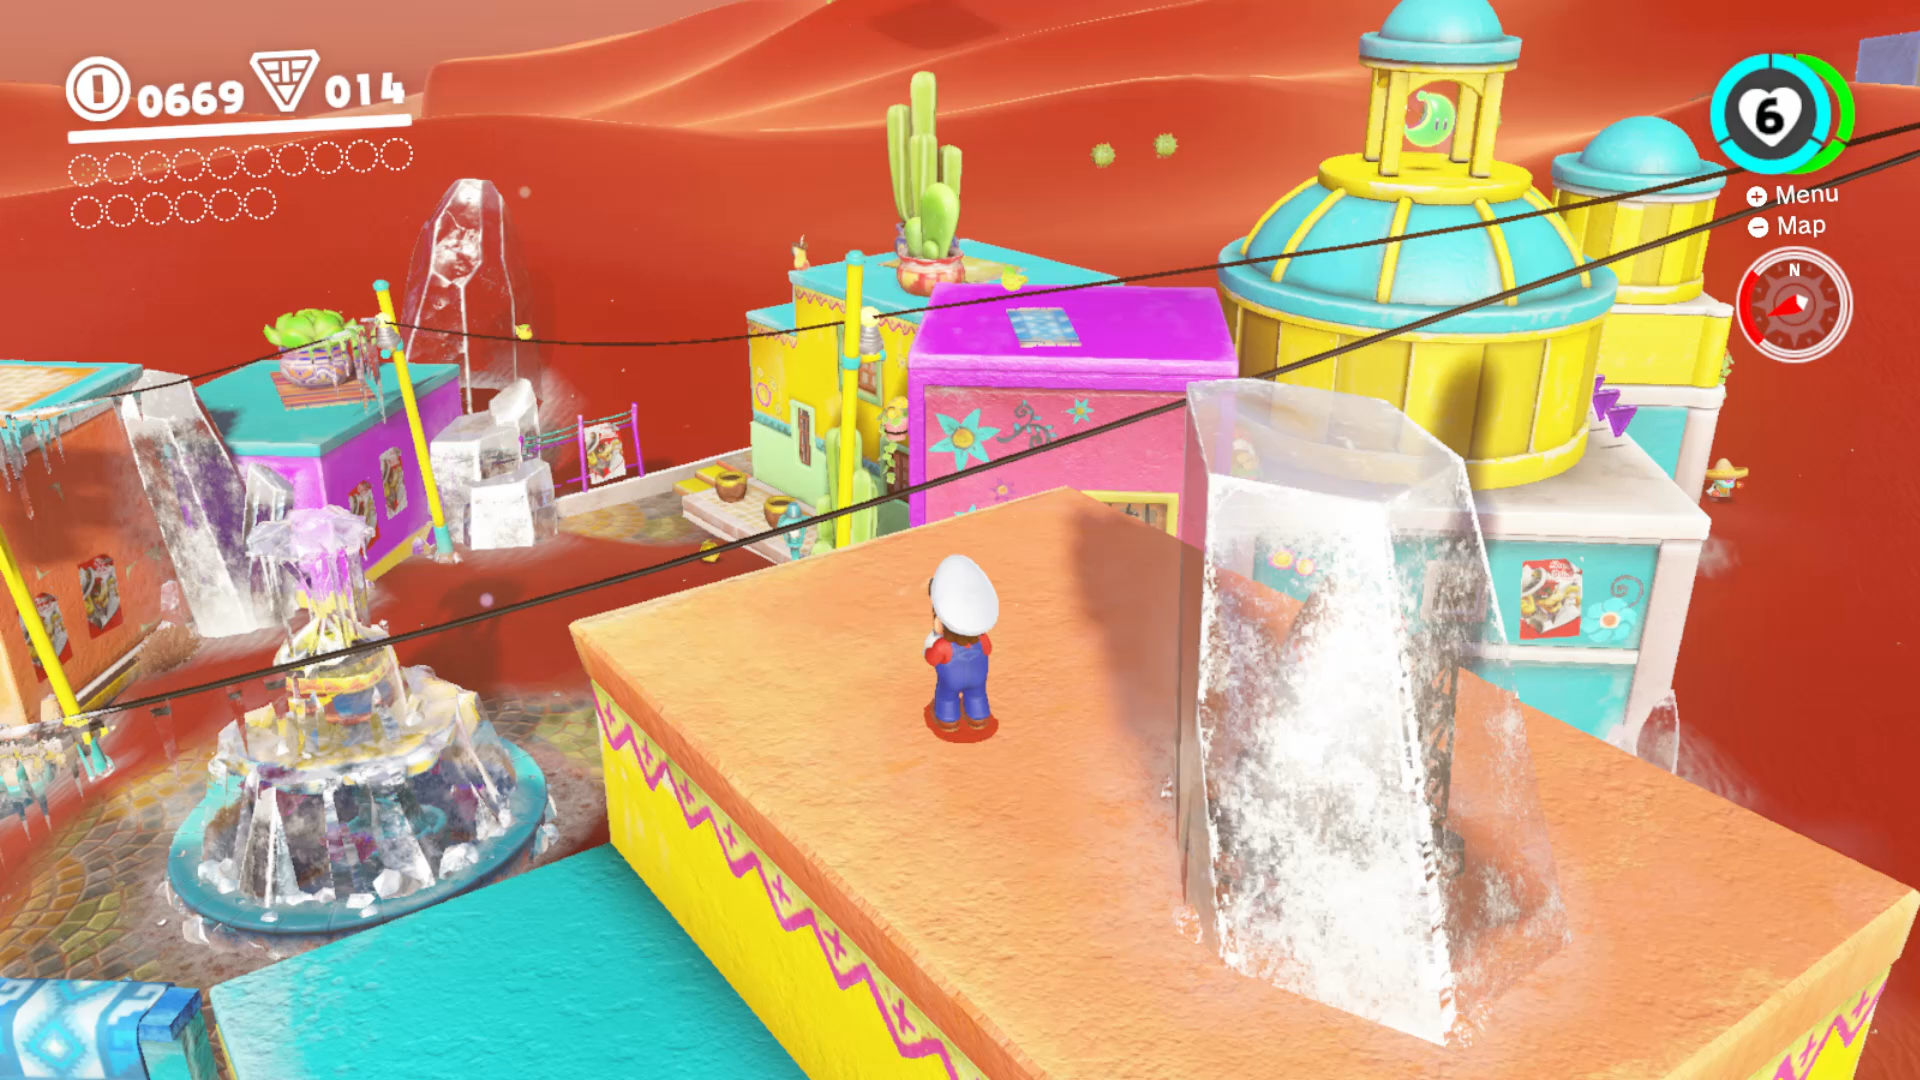 Image result for Mario Odyssey sand kingdom 1920x1080